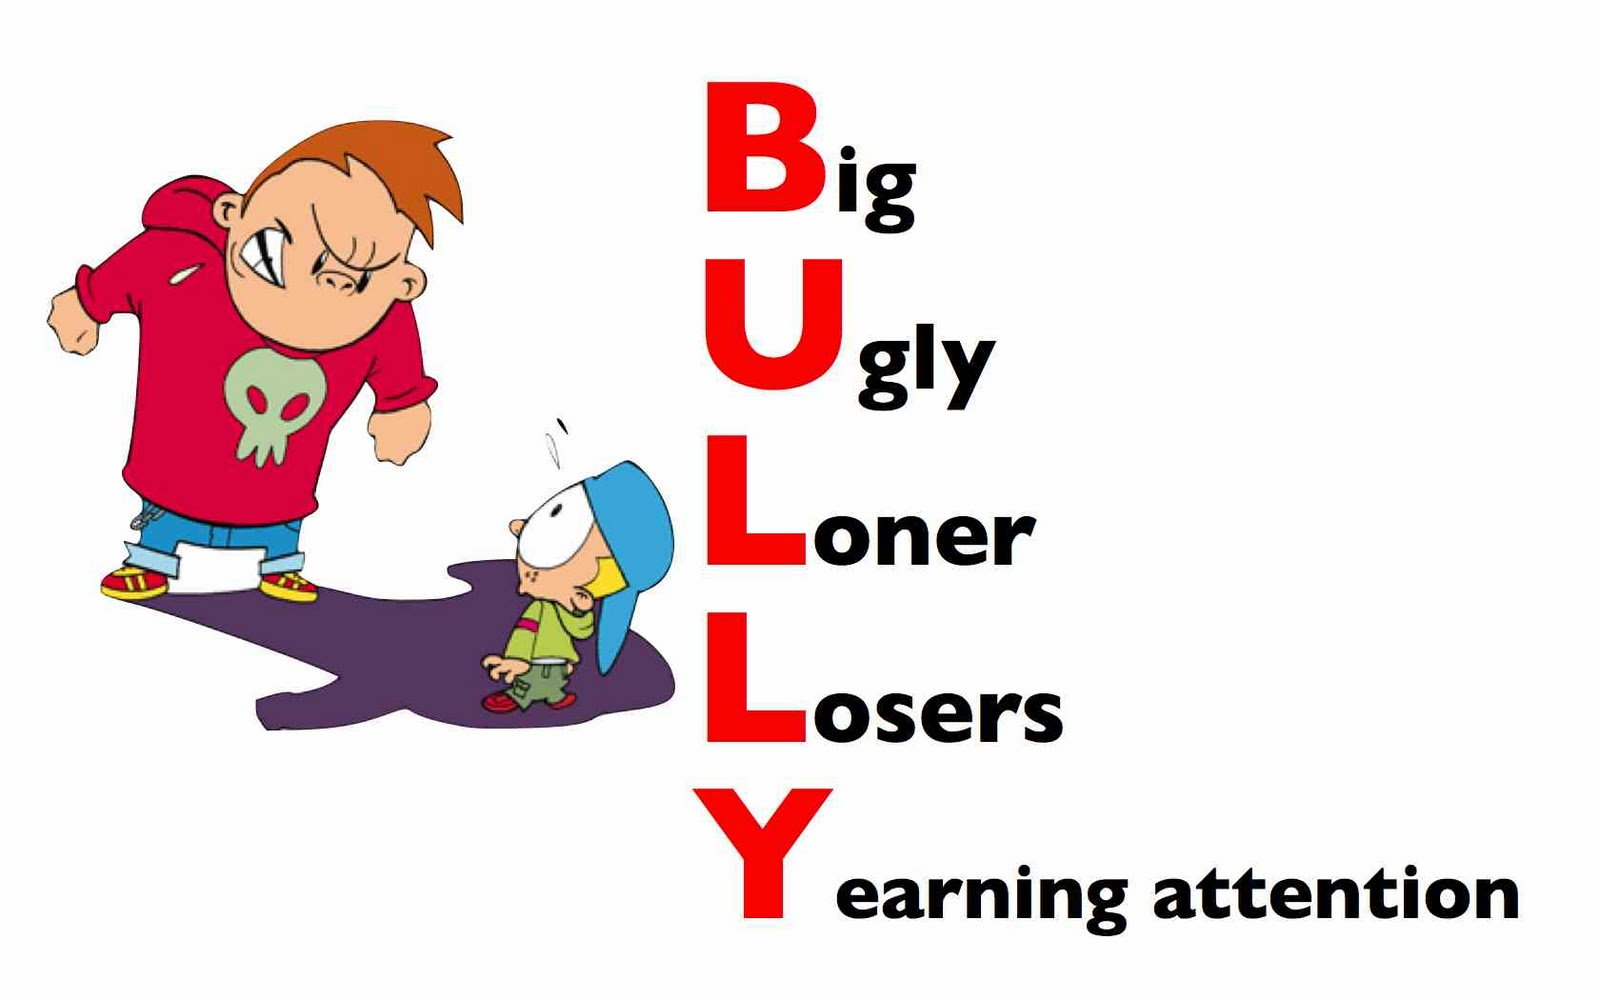 Bullying Quotes anti bully quotes [6]   Quotes links Bullying Quotes